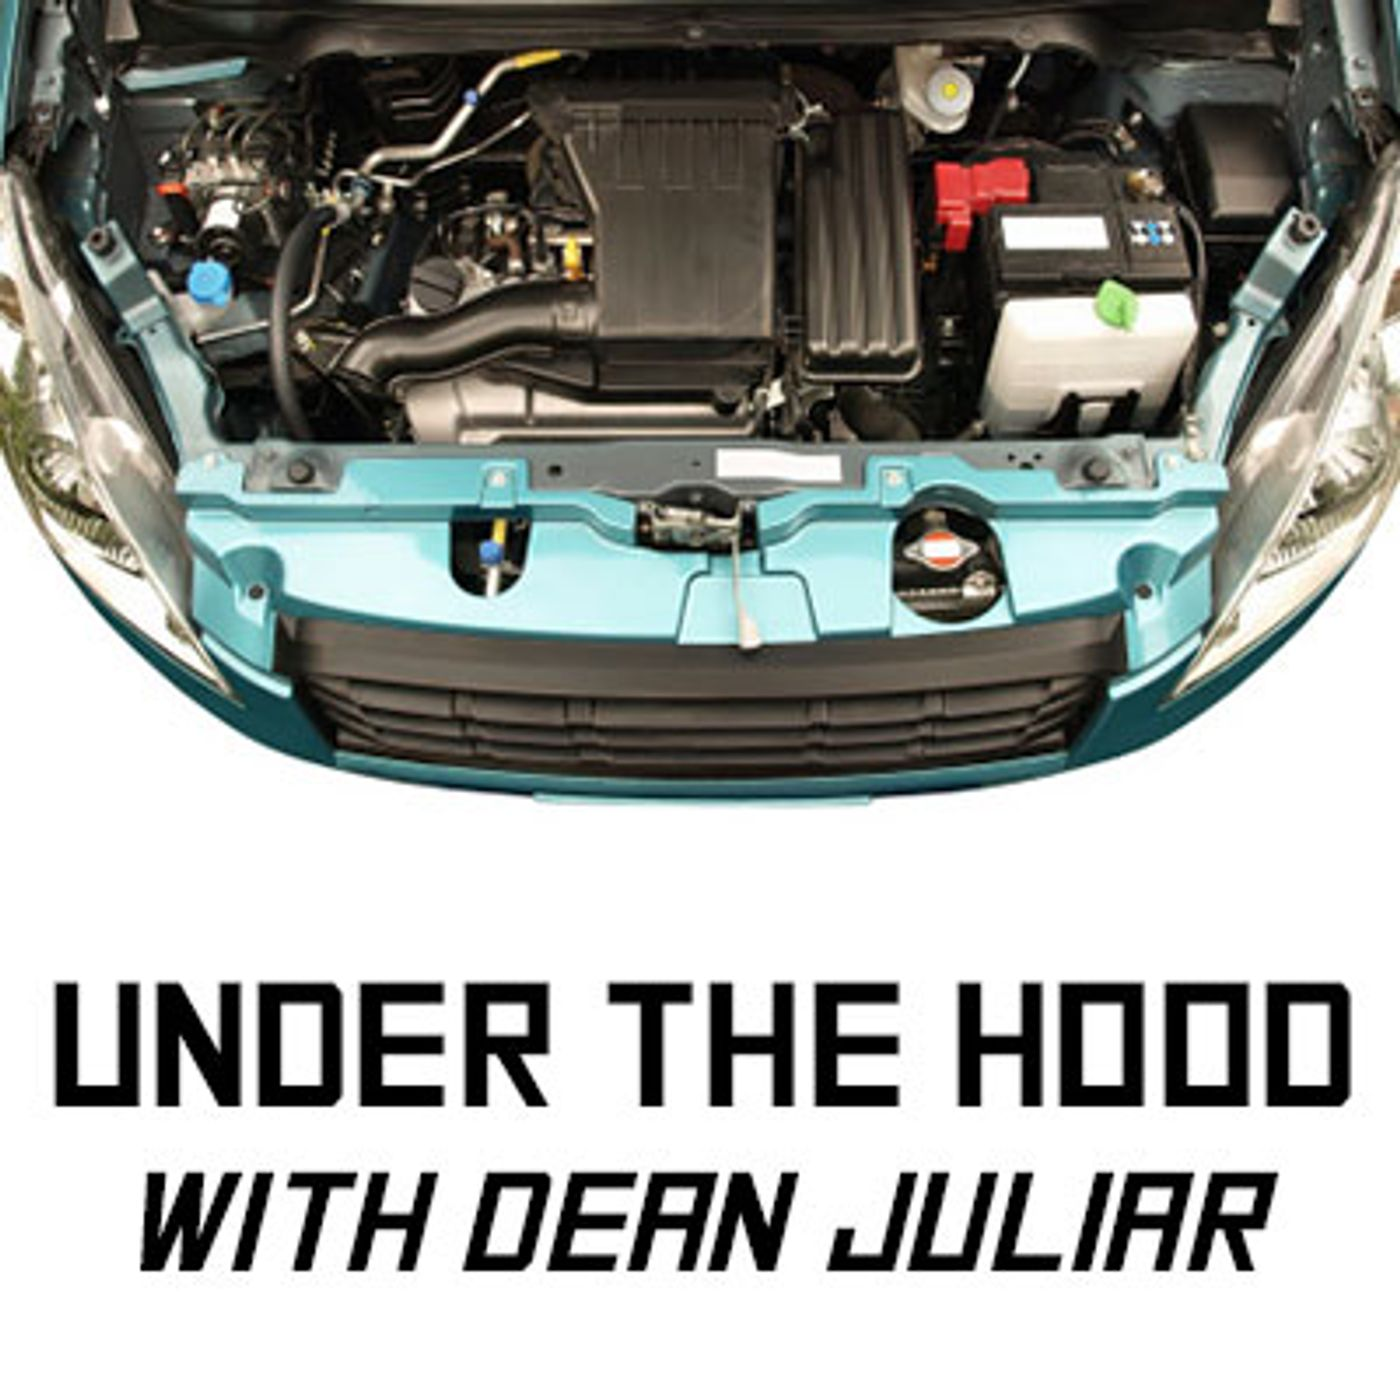 """Under The Hood"" On WHBY"